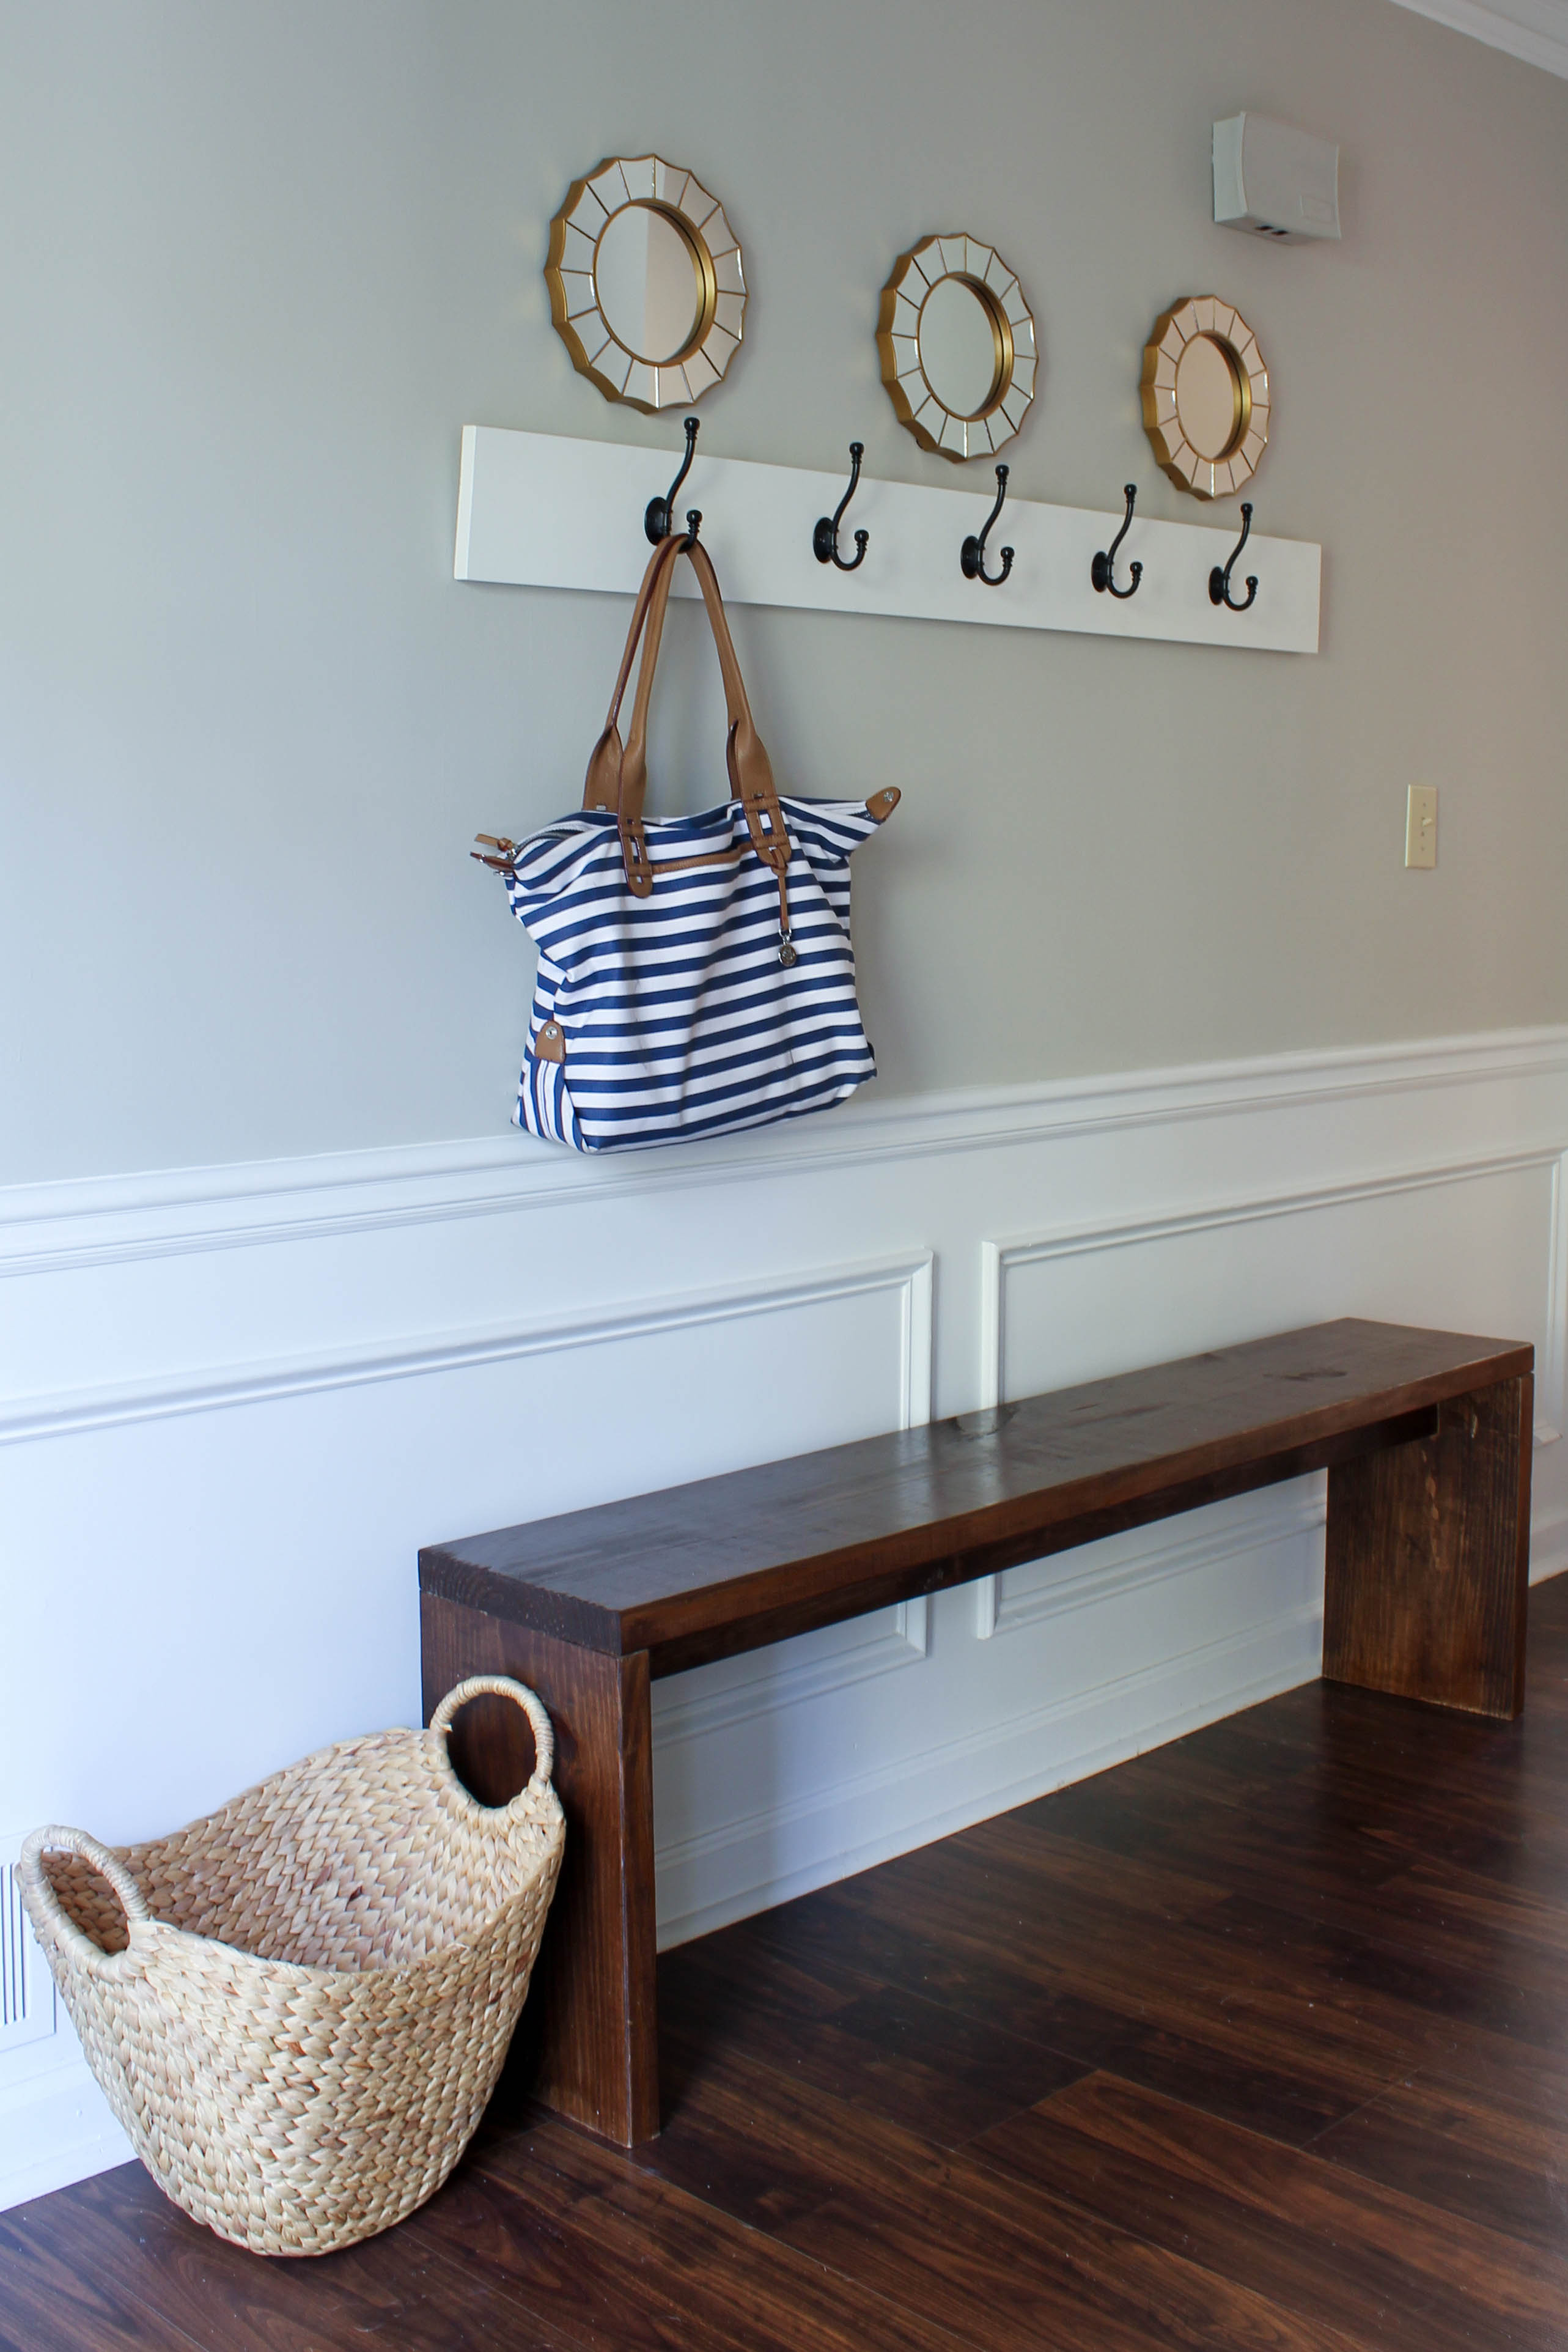 DIY Entryway Bench build plans and tutorial.